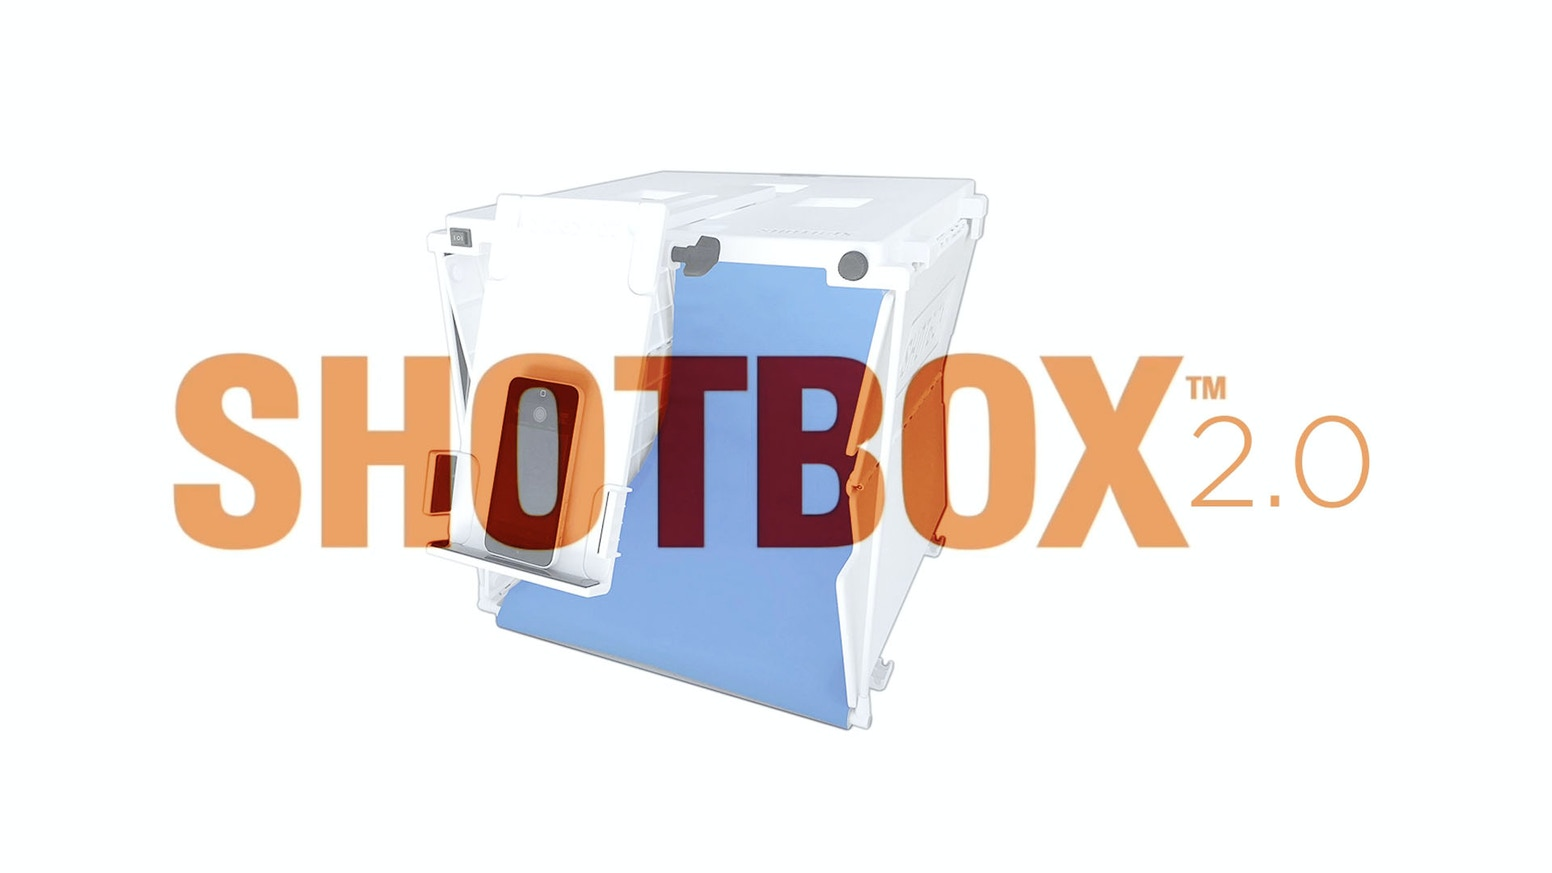 SHOTBOX 2.0 :: The Essential Pop-Up Photo Light Studio gives you professional quality pictures with even a basic phone camera.